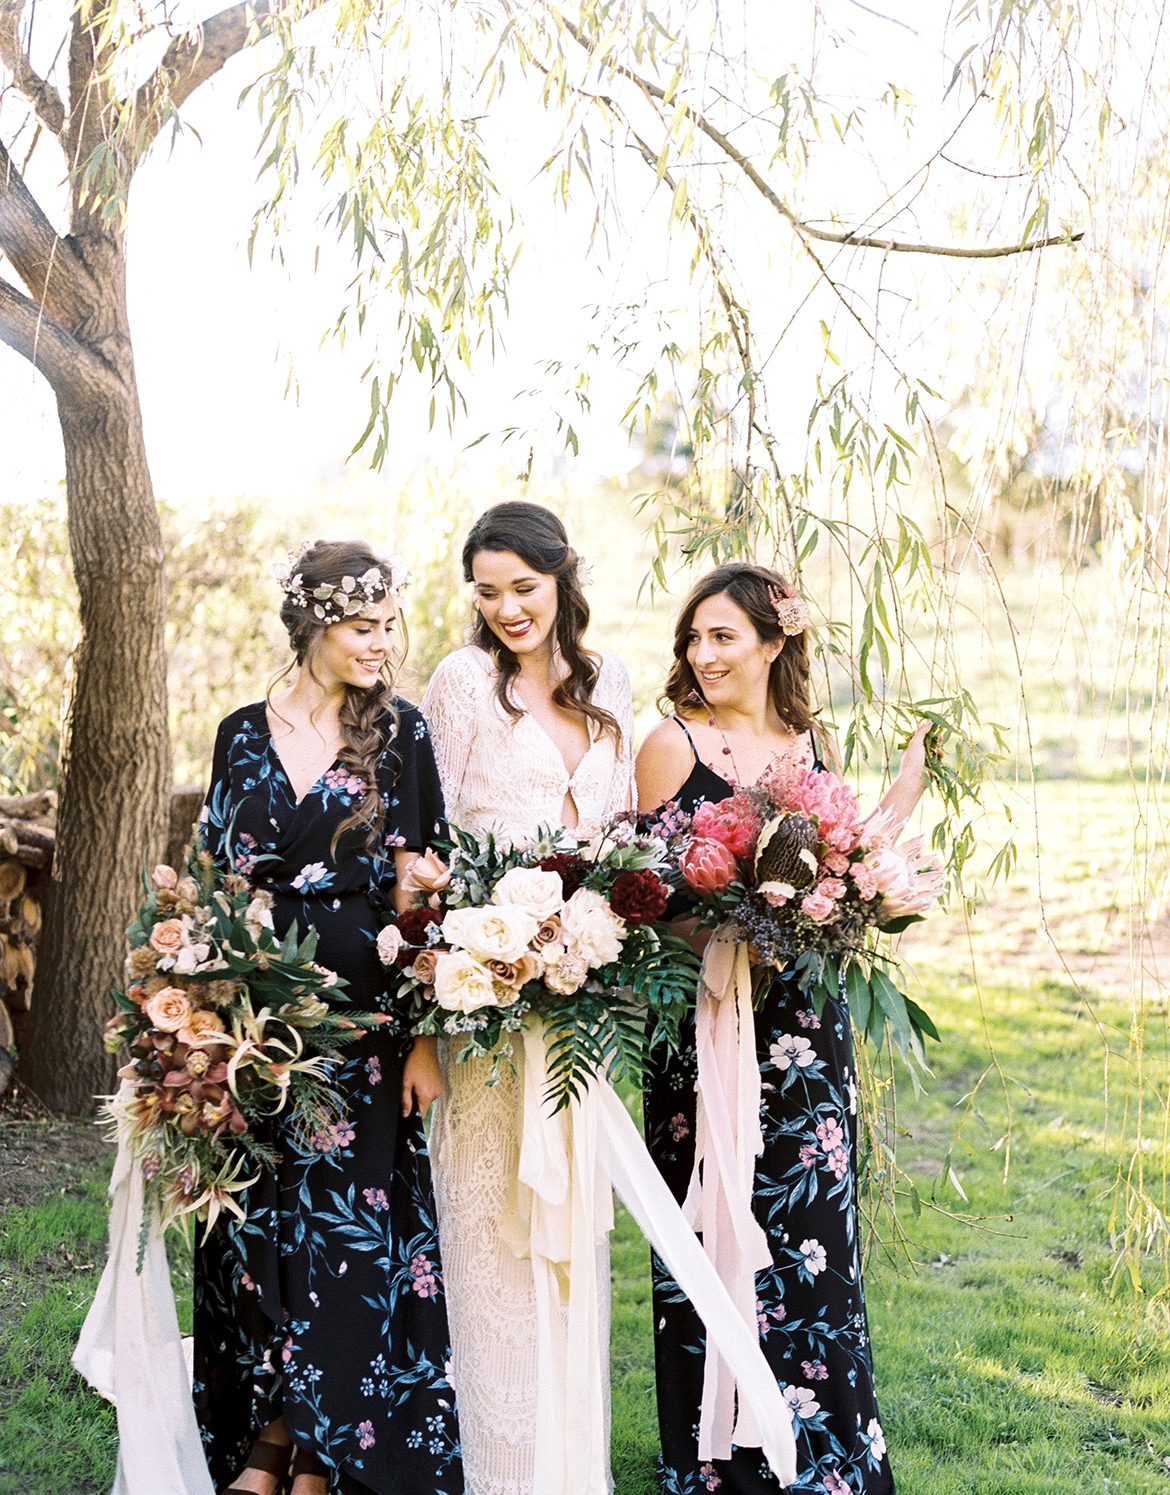 Show Me Your Mumu x Green Wedding Shoes bridesmaids dresses with a Daughers of Simone gown